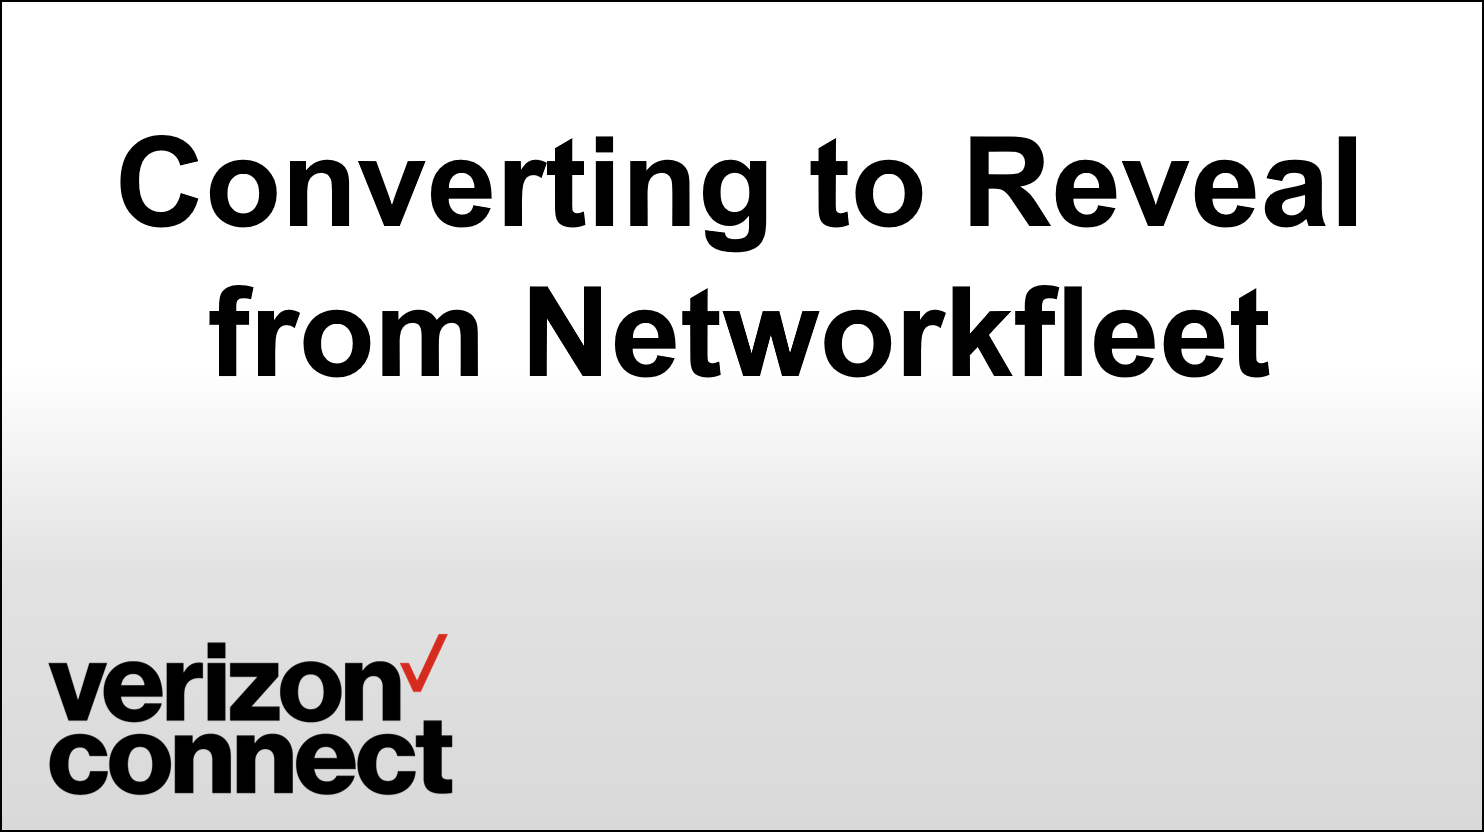 Converting to Reveal from Networkfleet